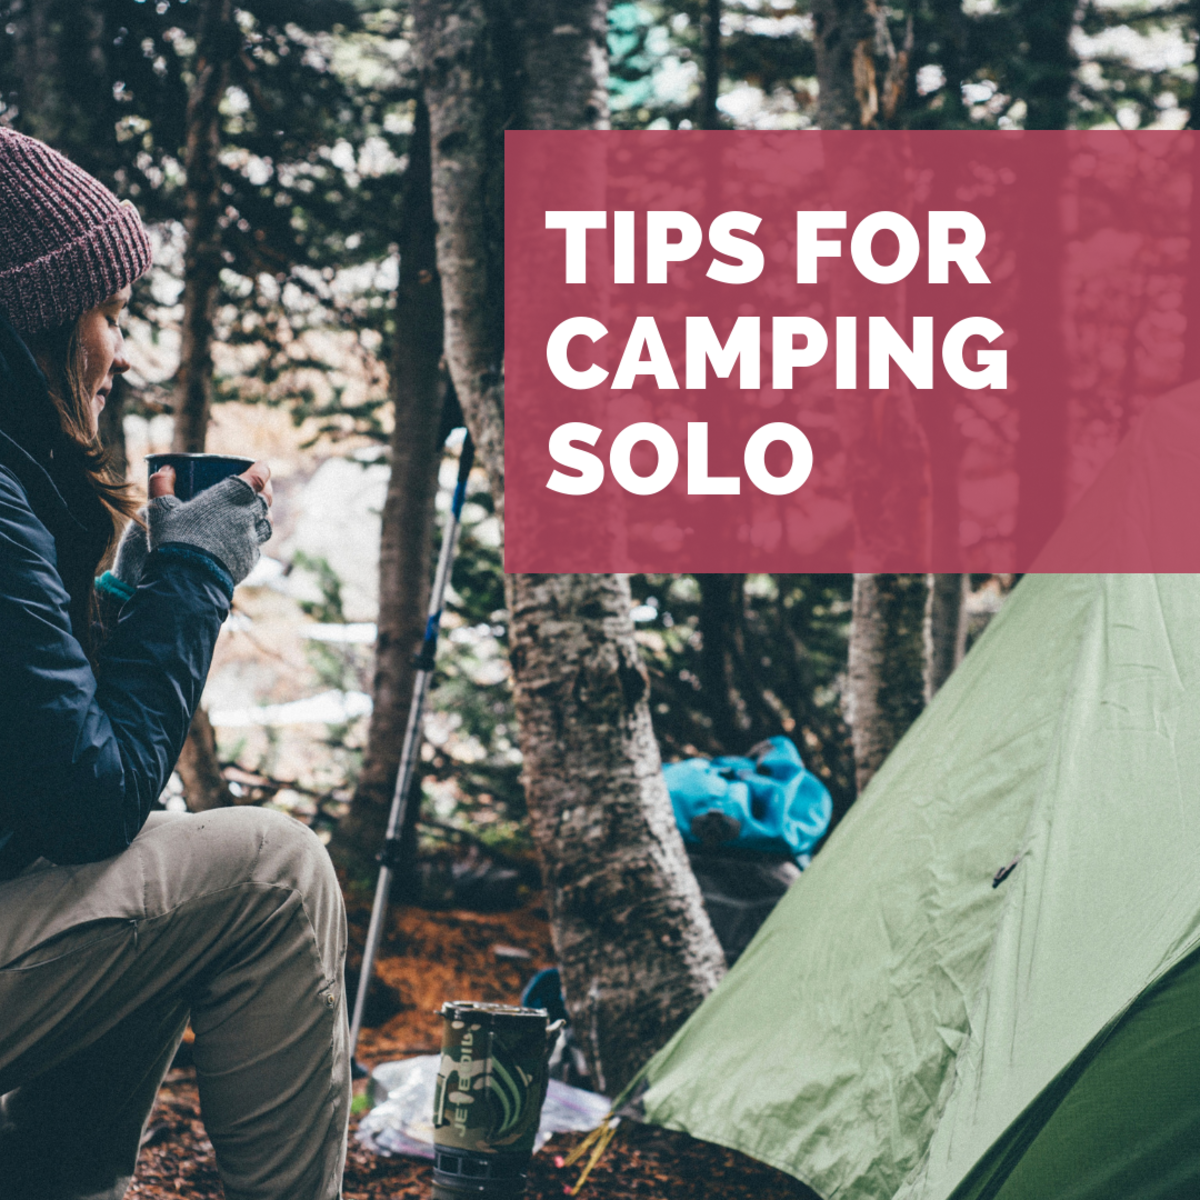 First Time Camping Alone or Solo? Tips for Women